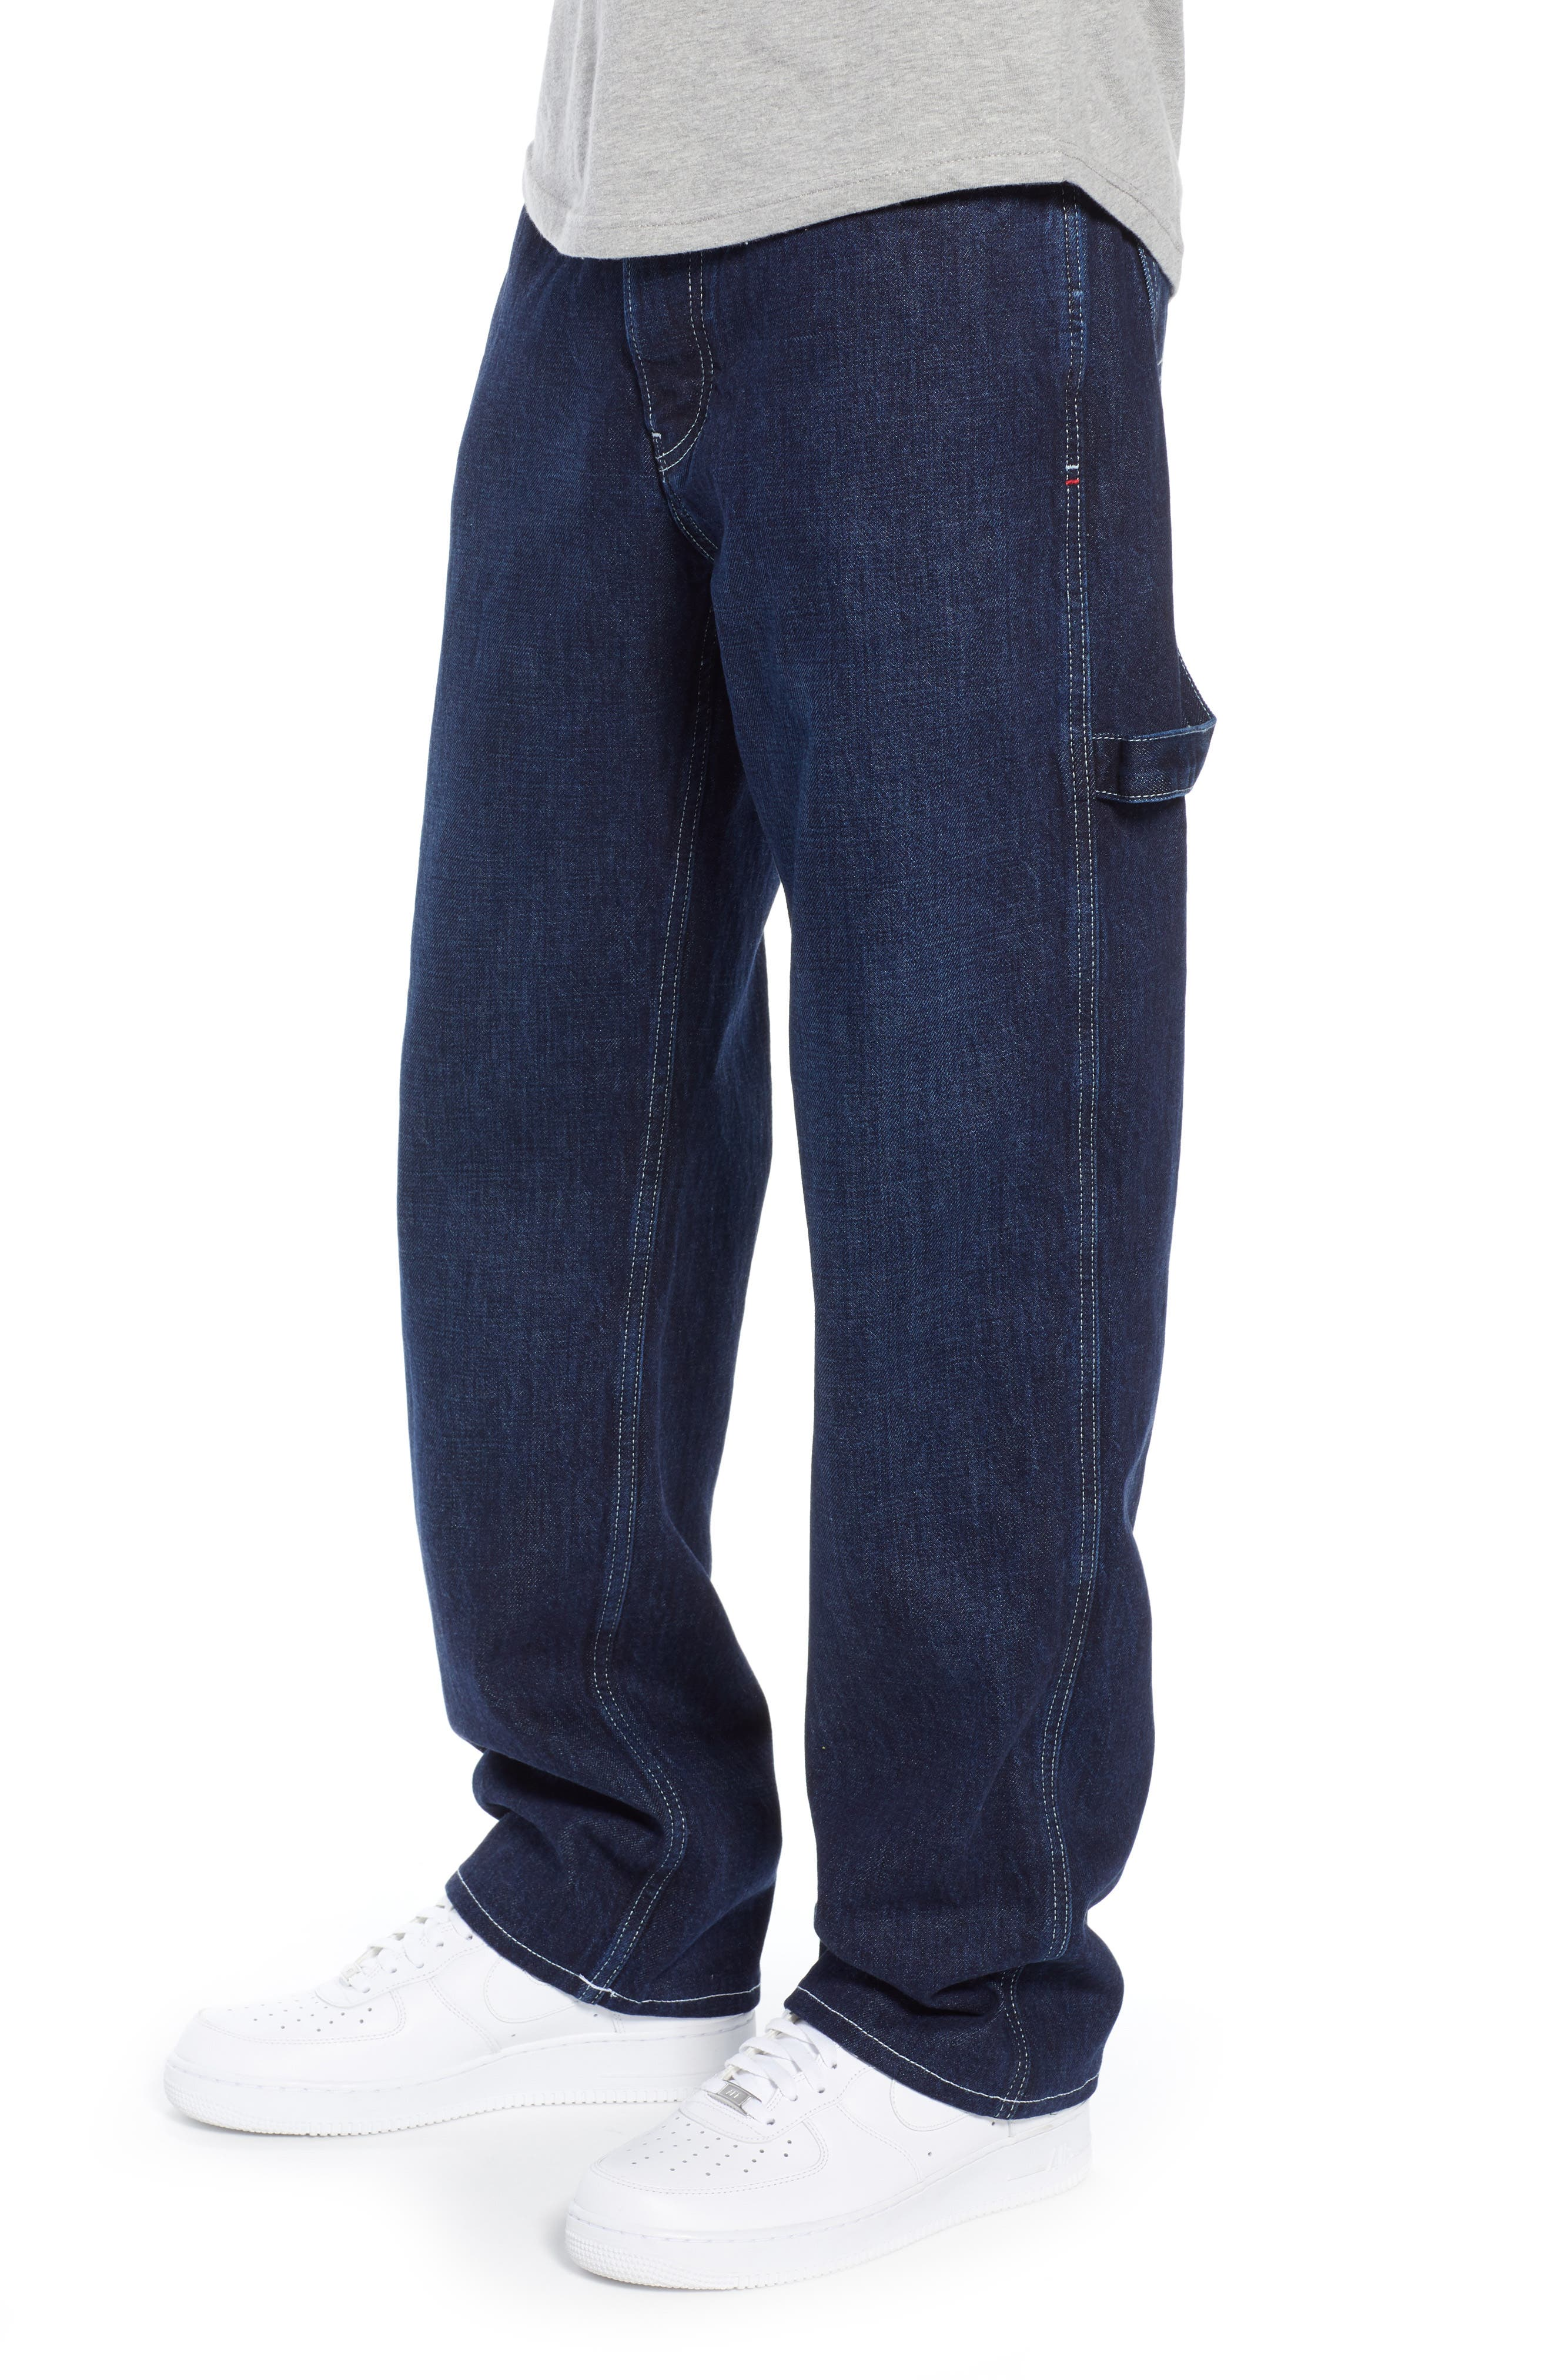 TJM 1986 Relaxed Carpenter Pants,                             Alternate thumbnail 3, color,                             CONTRAST DARK RIG